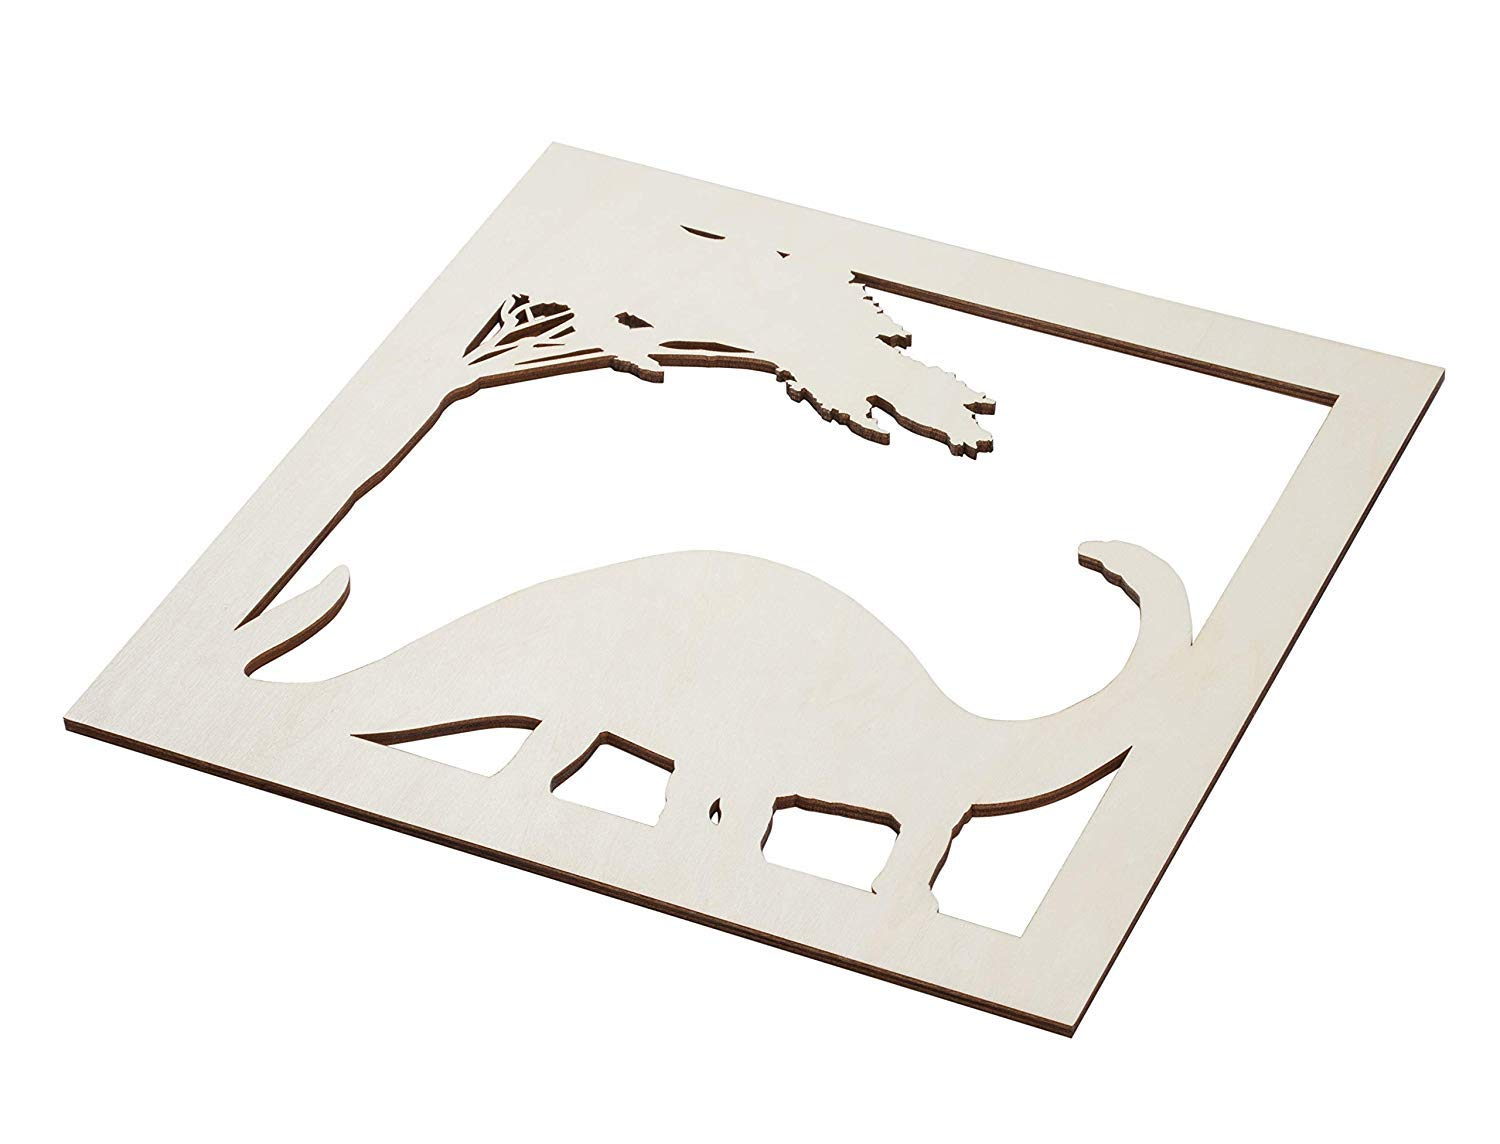 Genie Crafts 2-Piece Unfinished Brontosaurus Dinosaur Cutout, Jurassic Wall Art Decor for Painting, DIY Wood Crafts, and Signs, 11.6 x 0.2 Inches